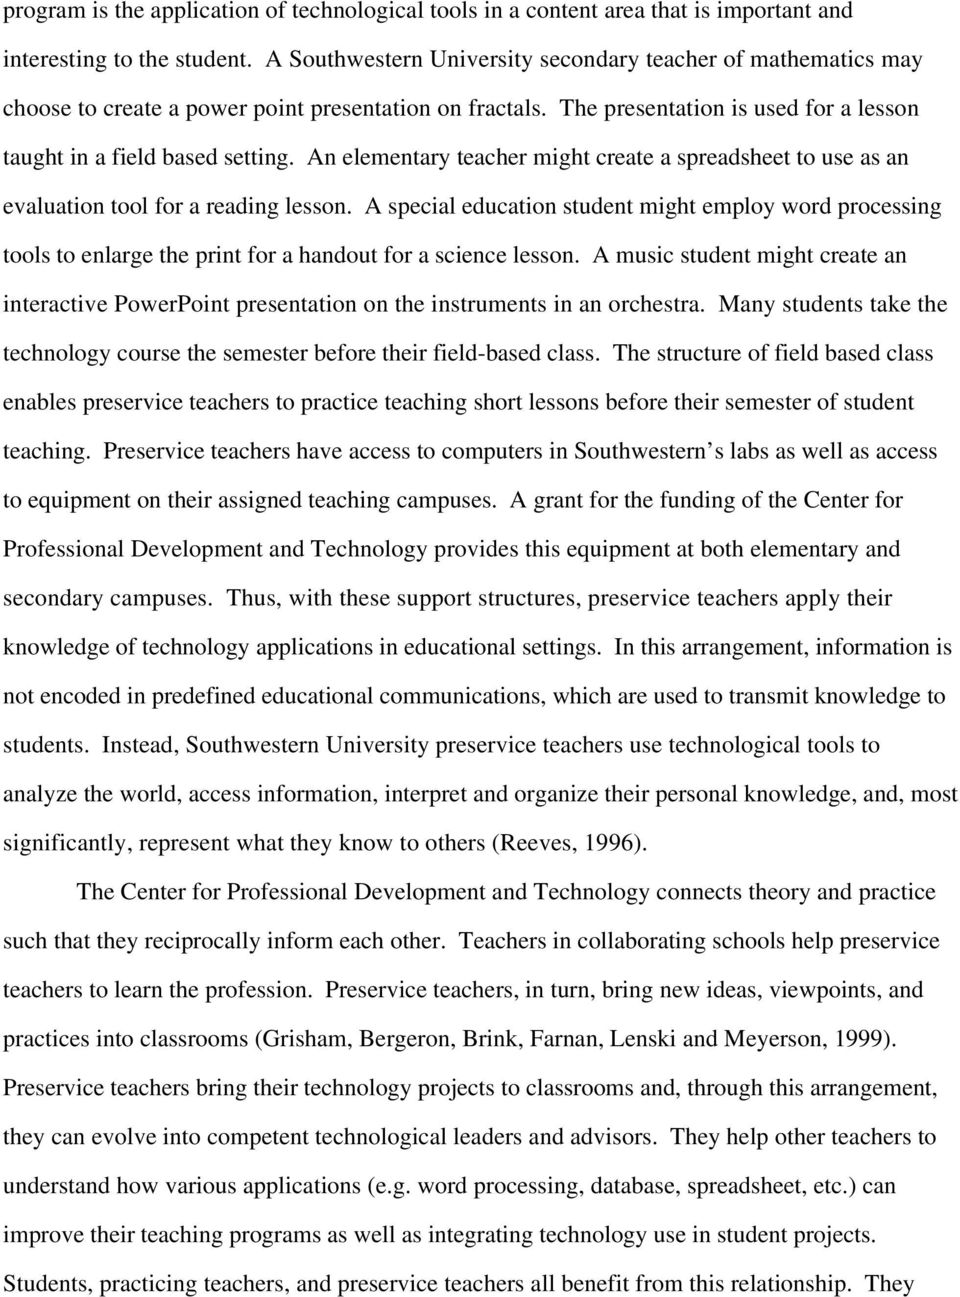 The Integration of Technology In Teacher Education - PDF